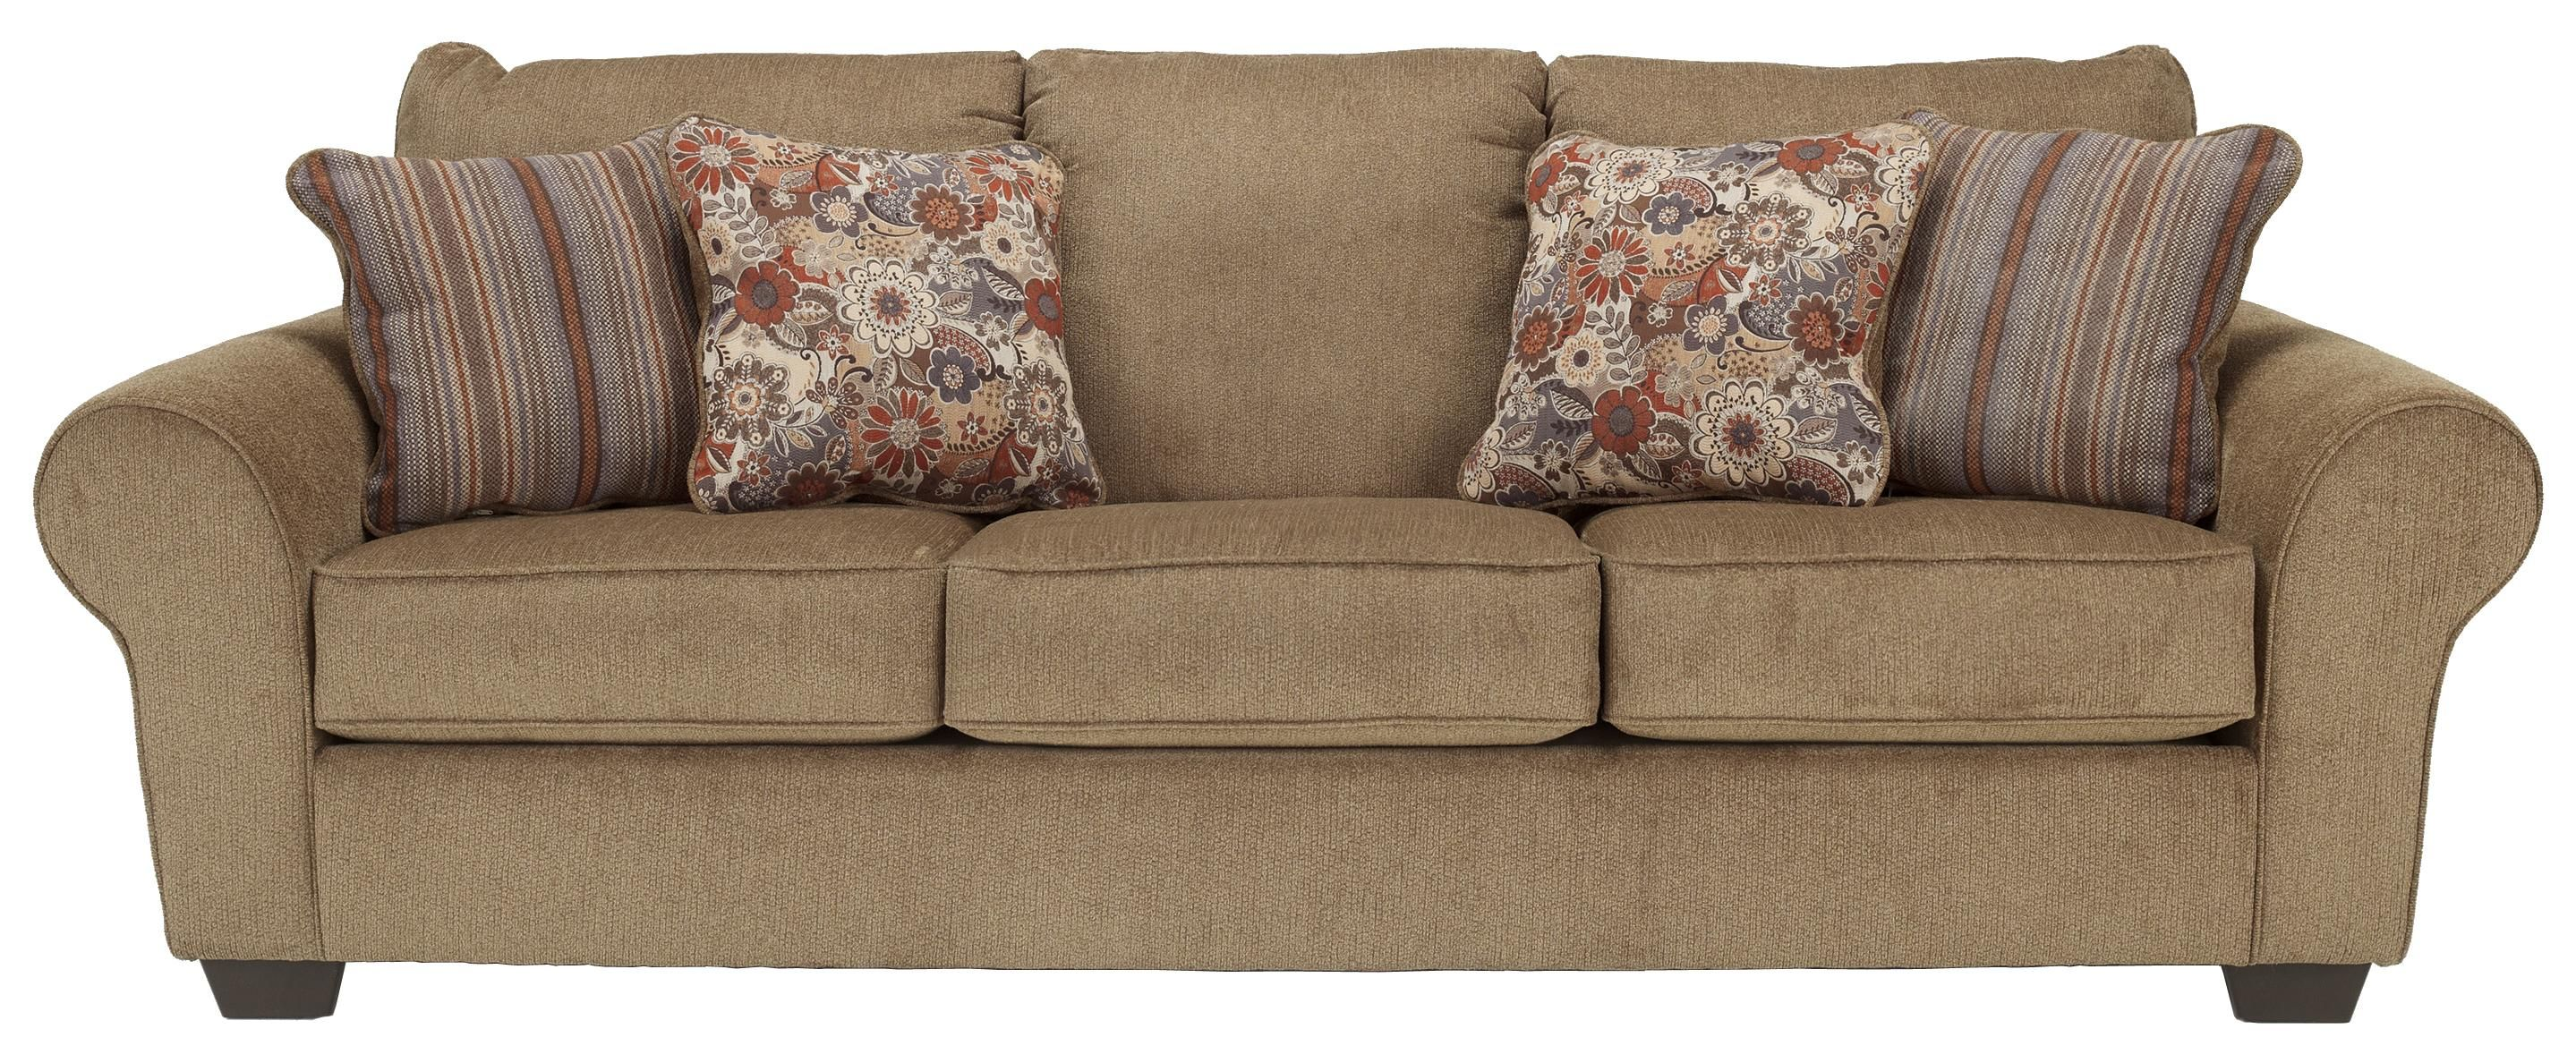 Galand Umber Queen Sofa Sleeper By Ashley Furniture